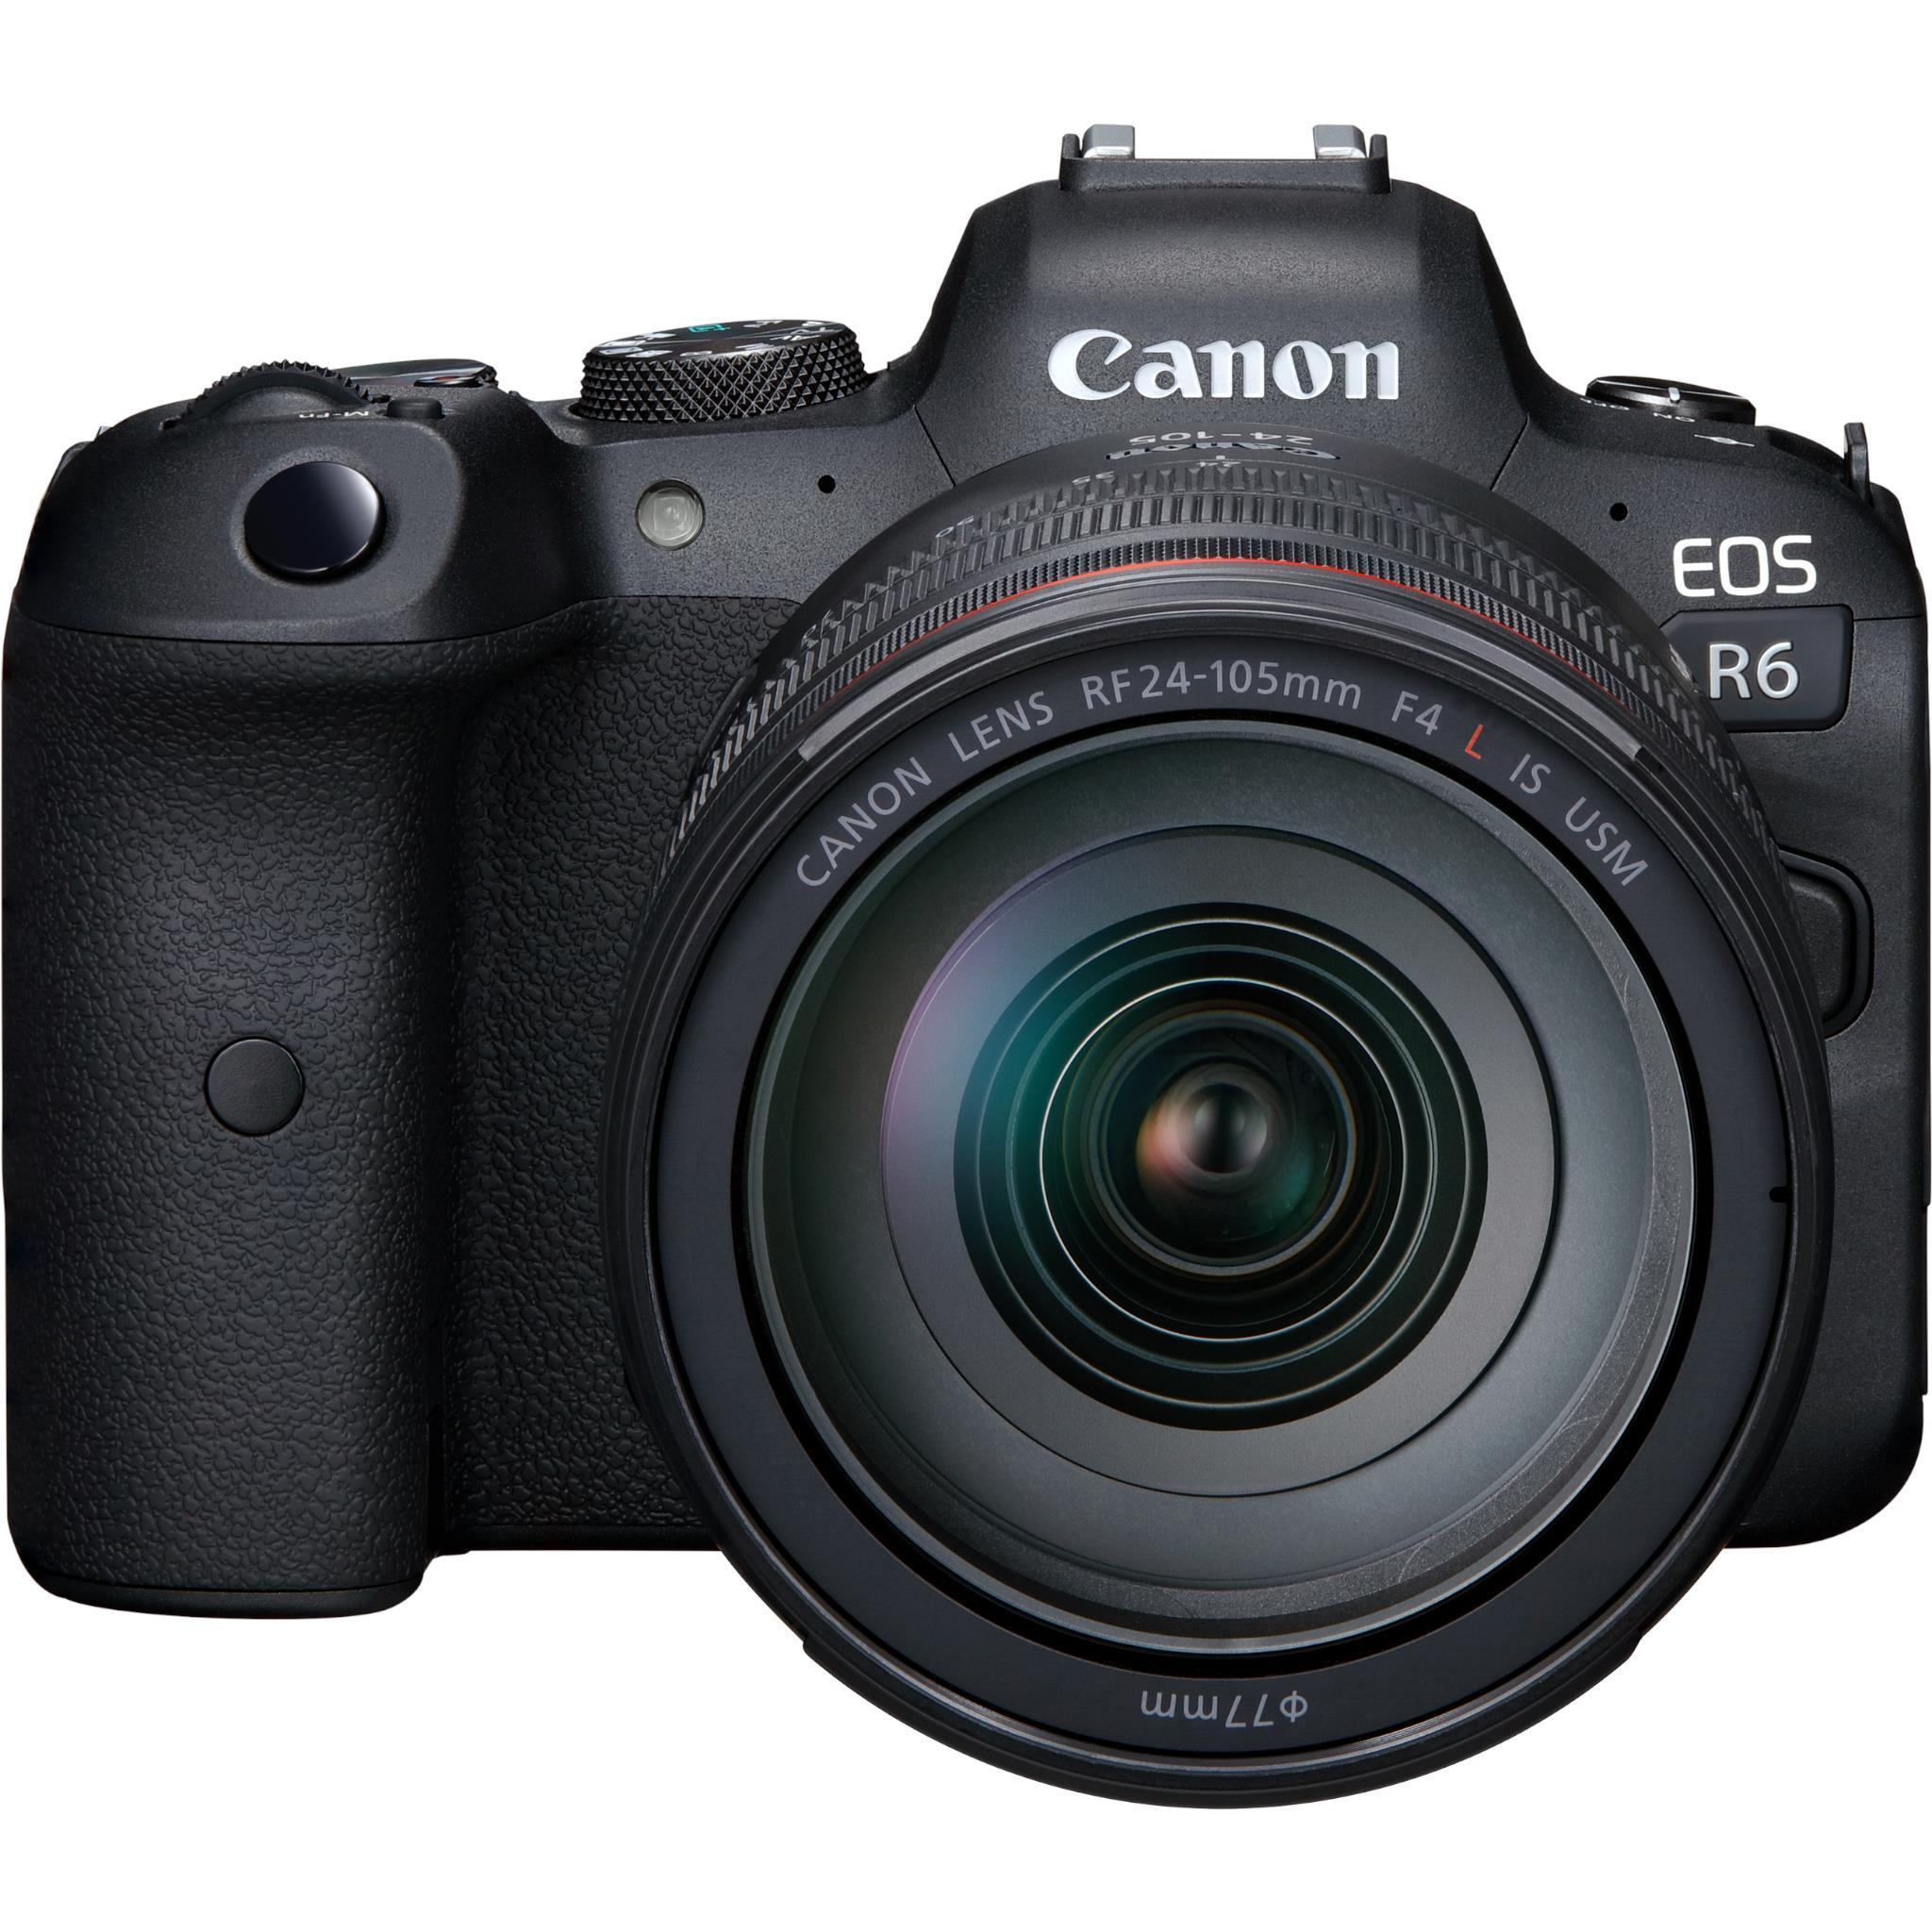 Canon EOS R6 Mirrorless Camera with RF 24-105 f/4-7.1 IS STM Lens